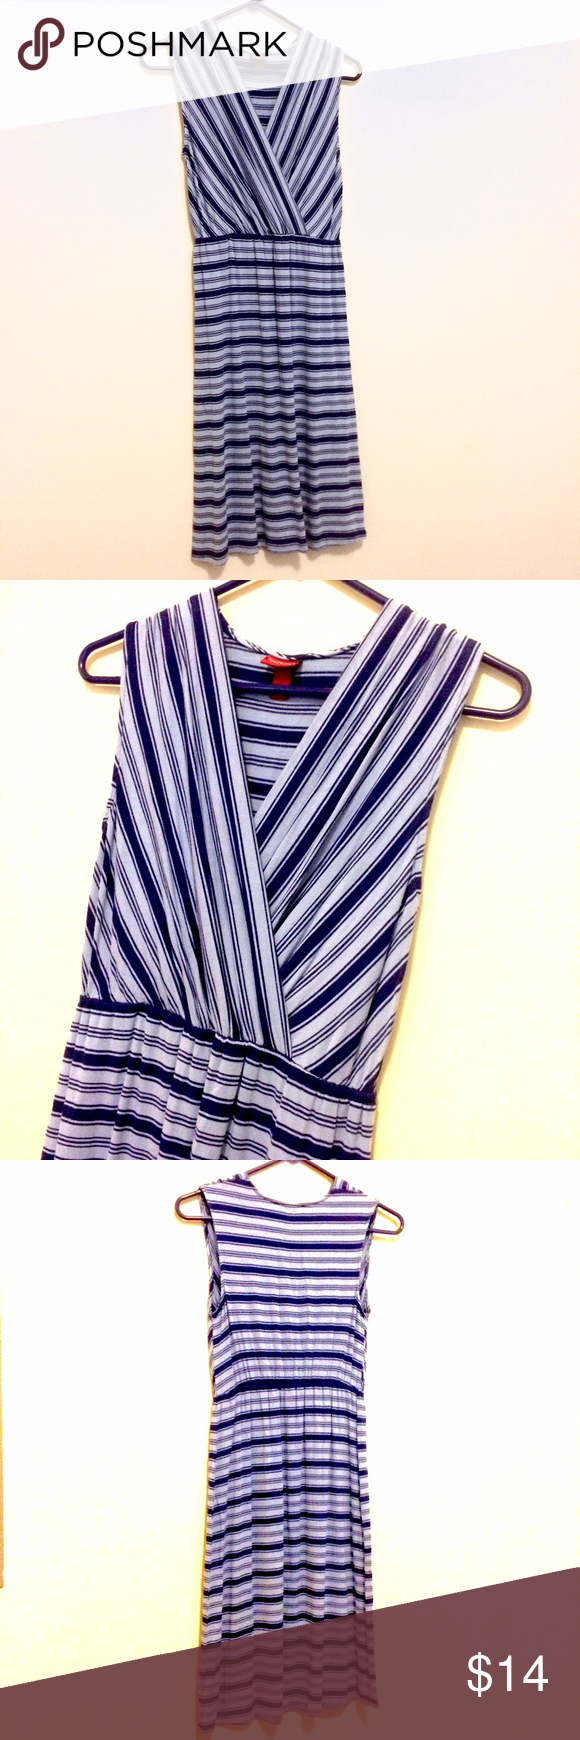 Sleeveless Knit Blue Striped Sun Dress by Merona Super comfortable and flattering sundress. Only worn a couple times. Merona Dresses